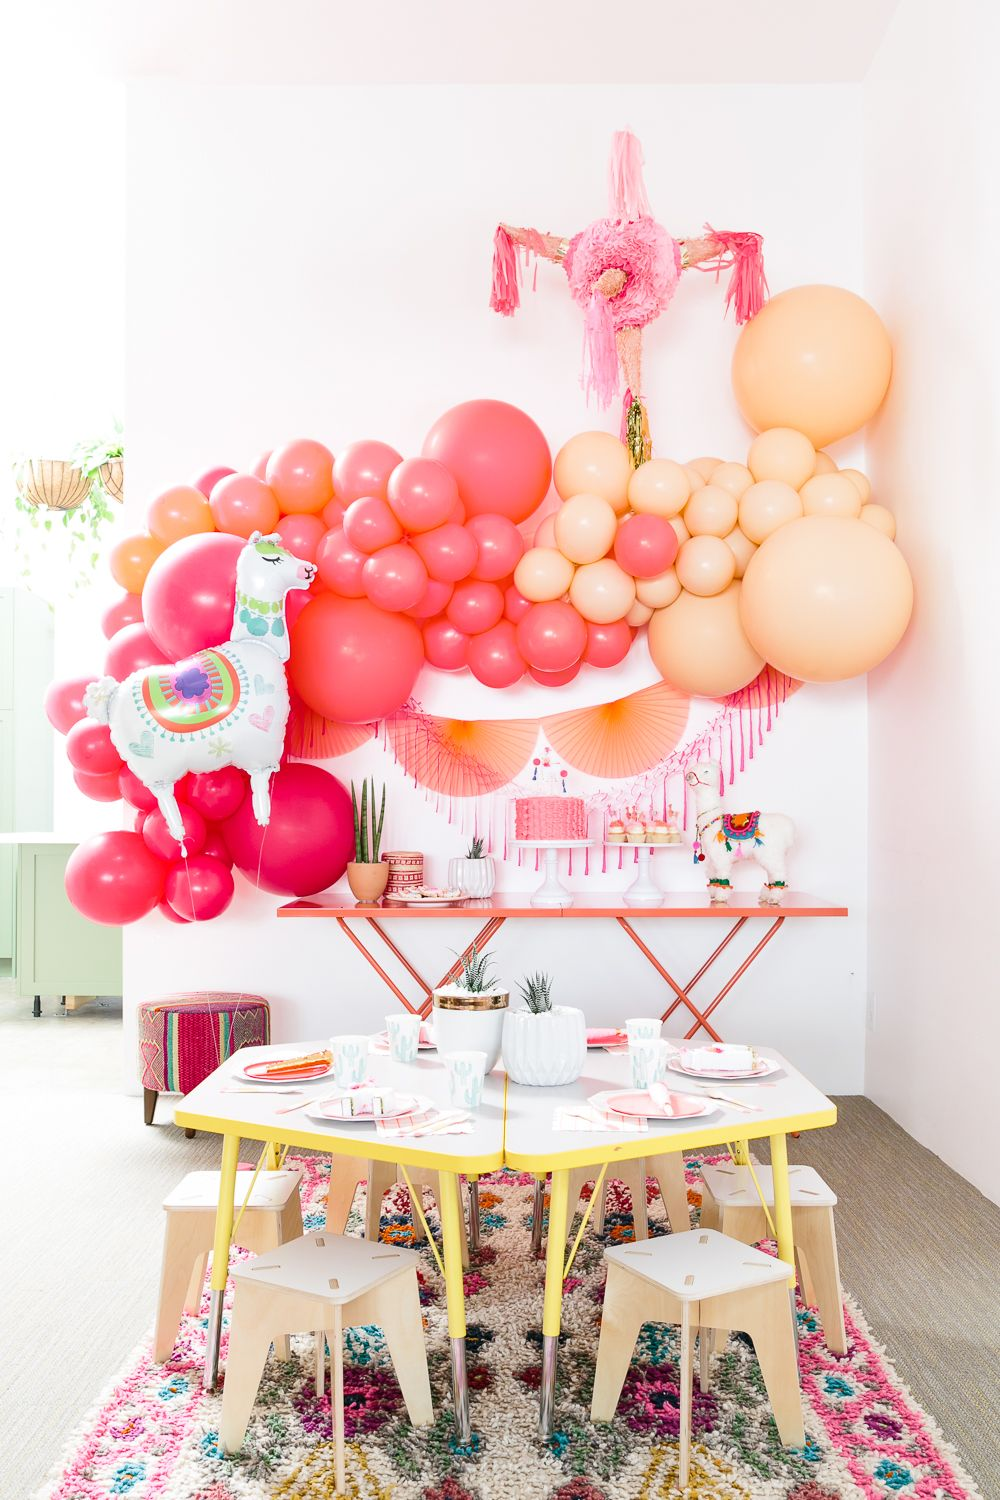 100-layer-cakelet-bonjour-fete-all-the-pink-party